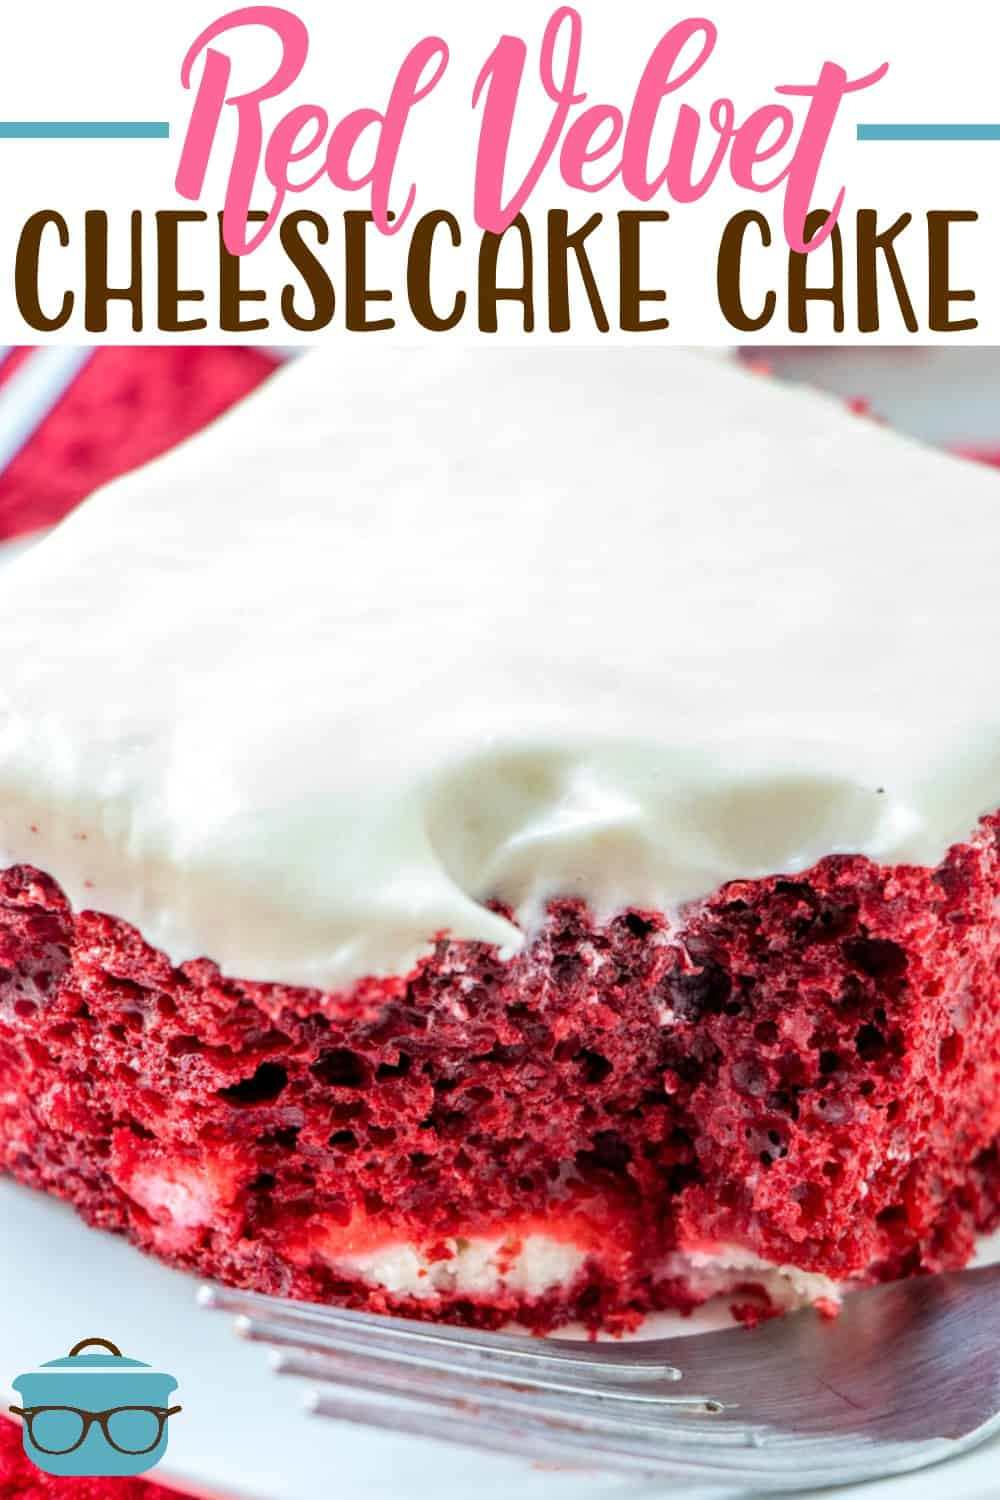 Red Velvet Cheesecake Cake is a super simple version of the cake at Cheesecake Factory. This one uses a boxed cake mix and an easy cheesecake filling! YUM! #redvelvet #dessert